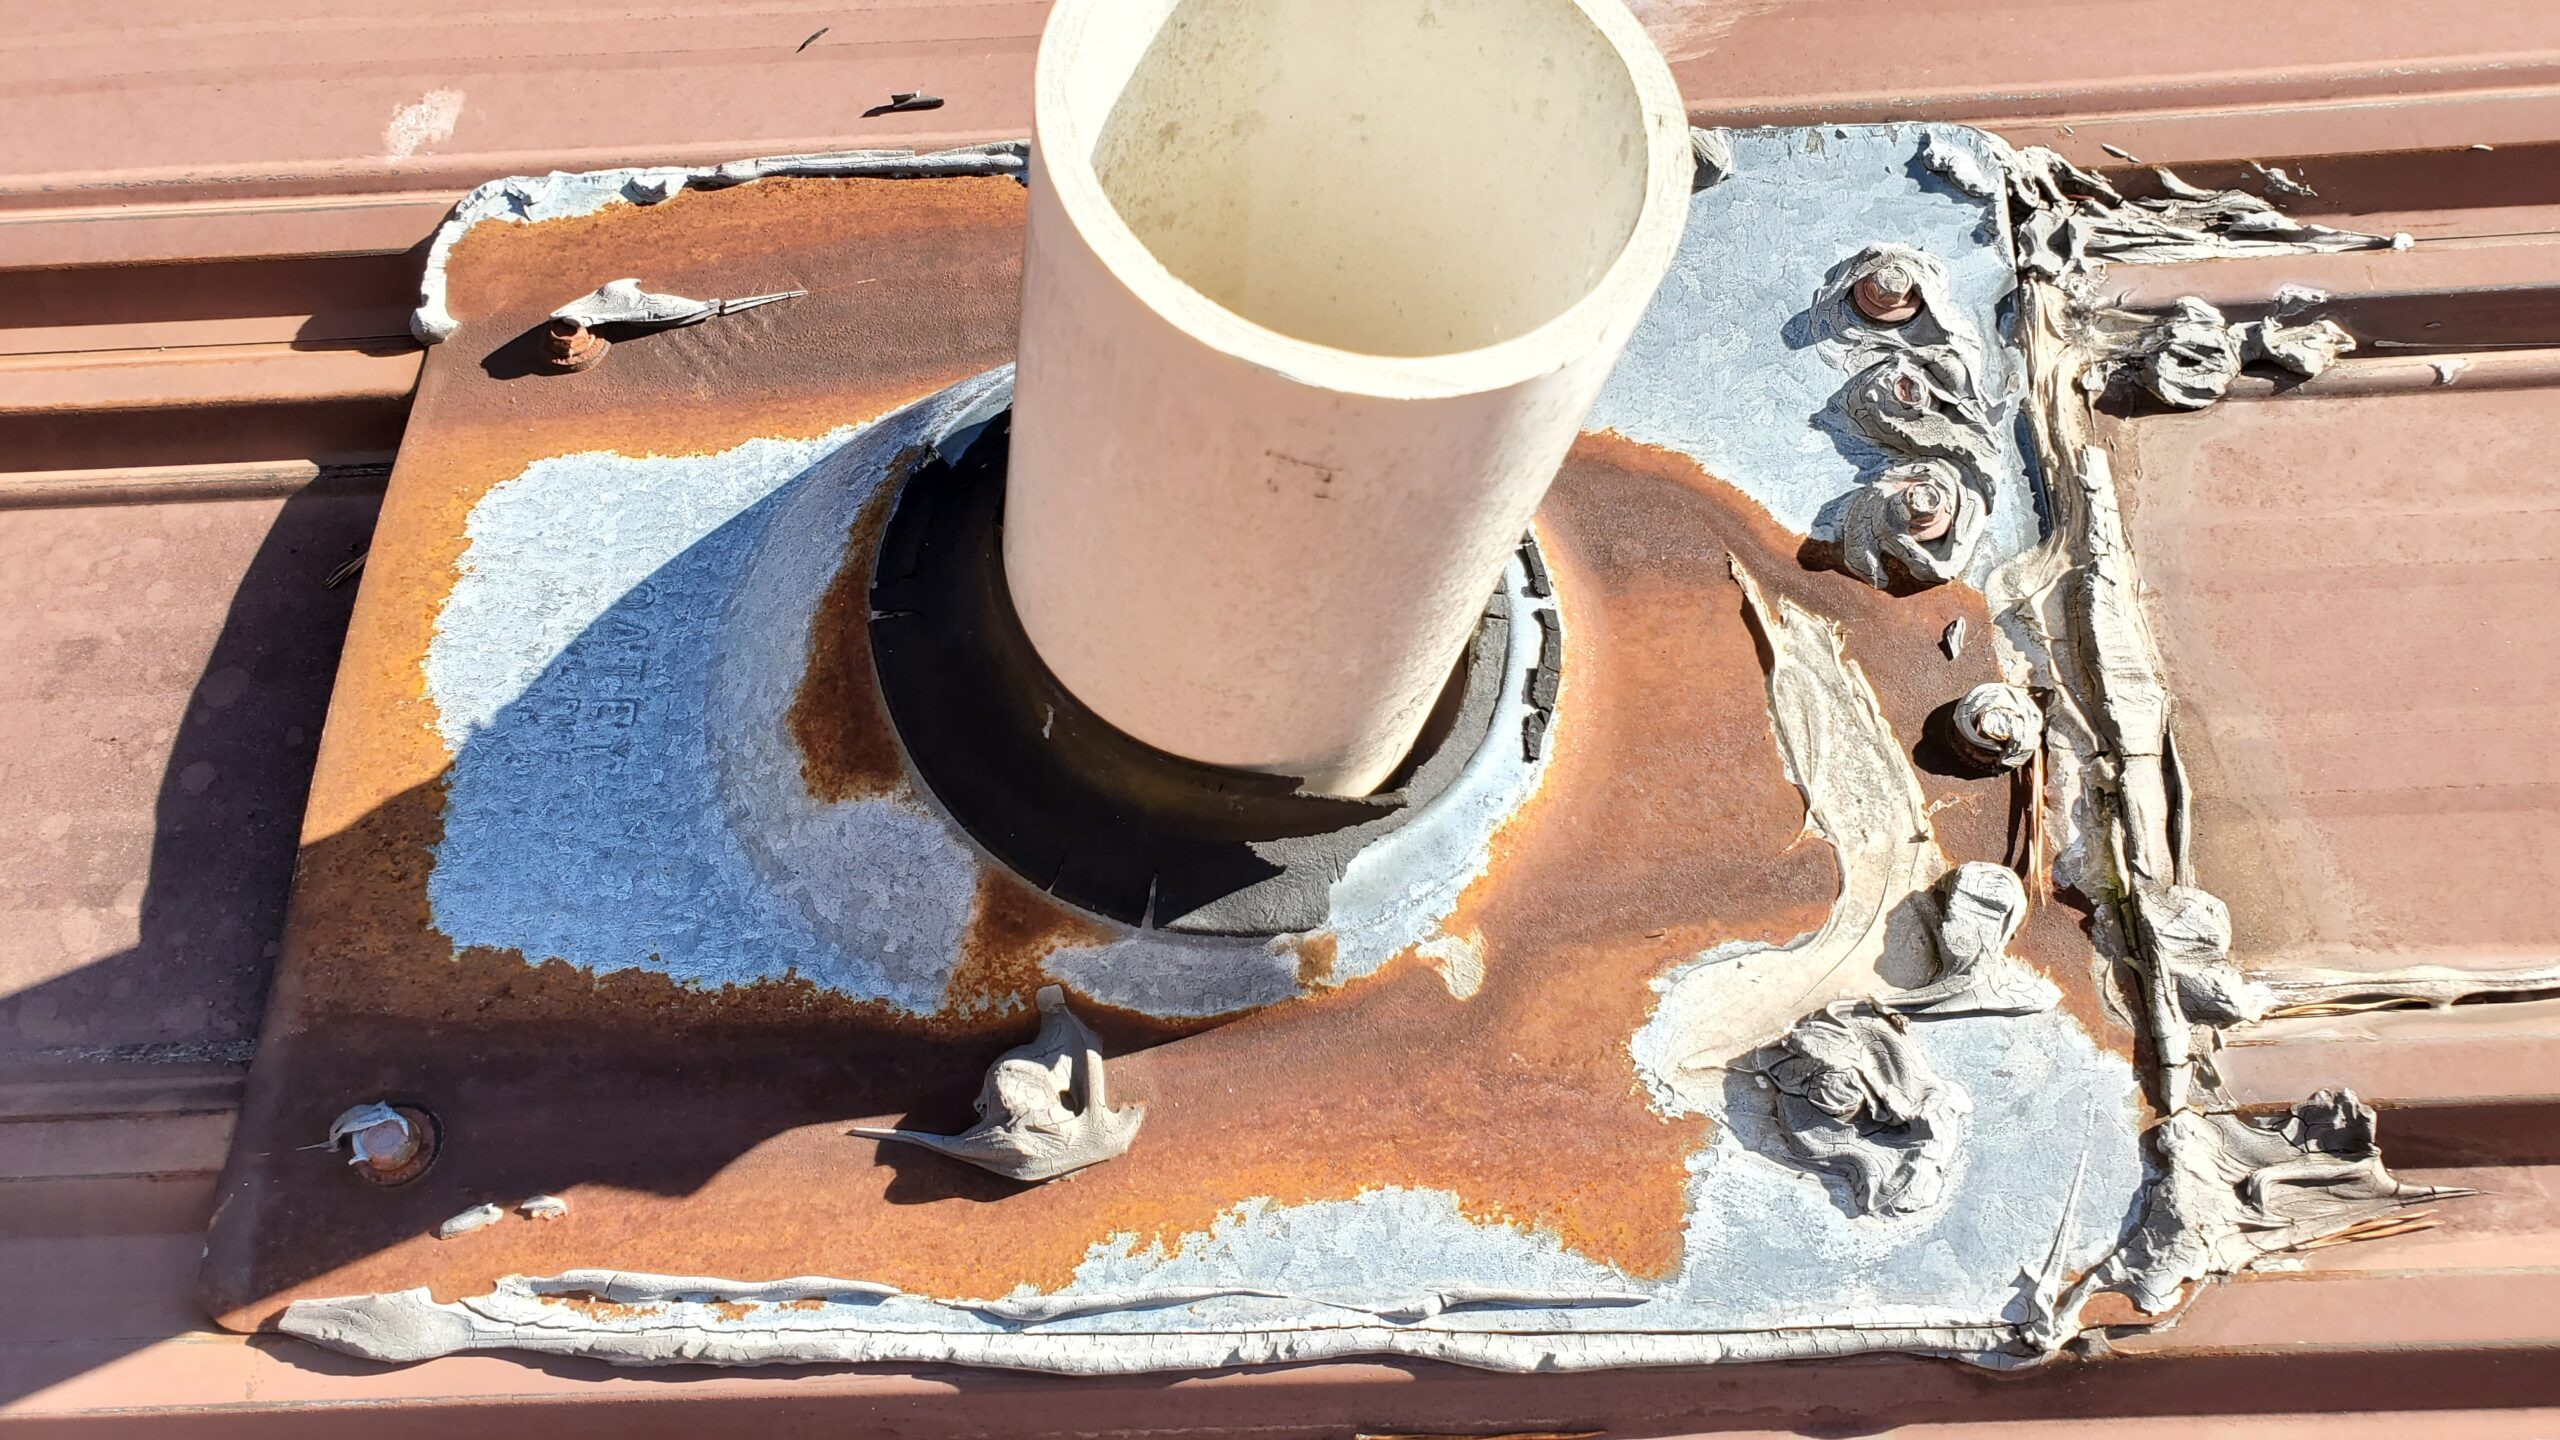 This is a picture of the old rusted pipe boot on top of a metal roof